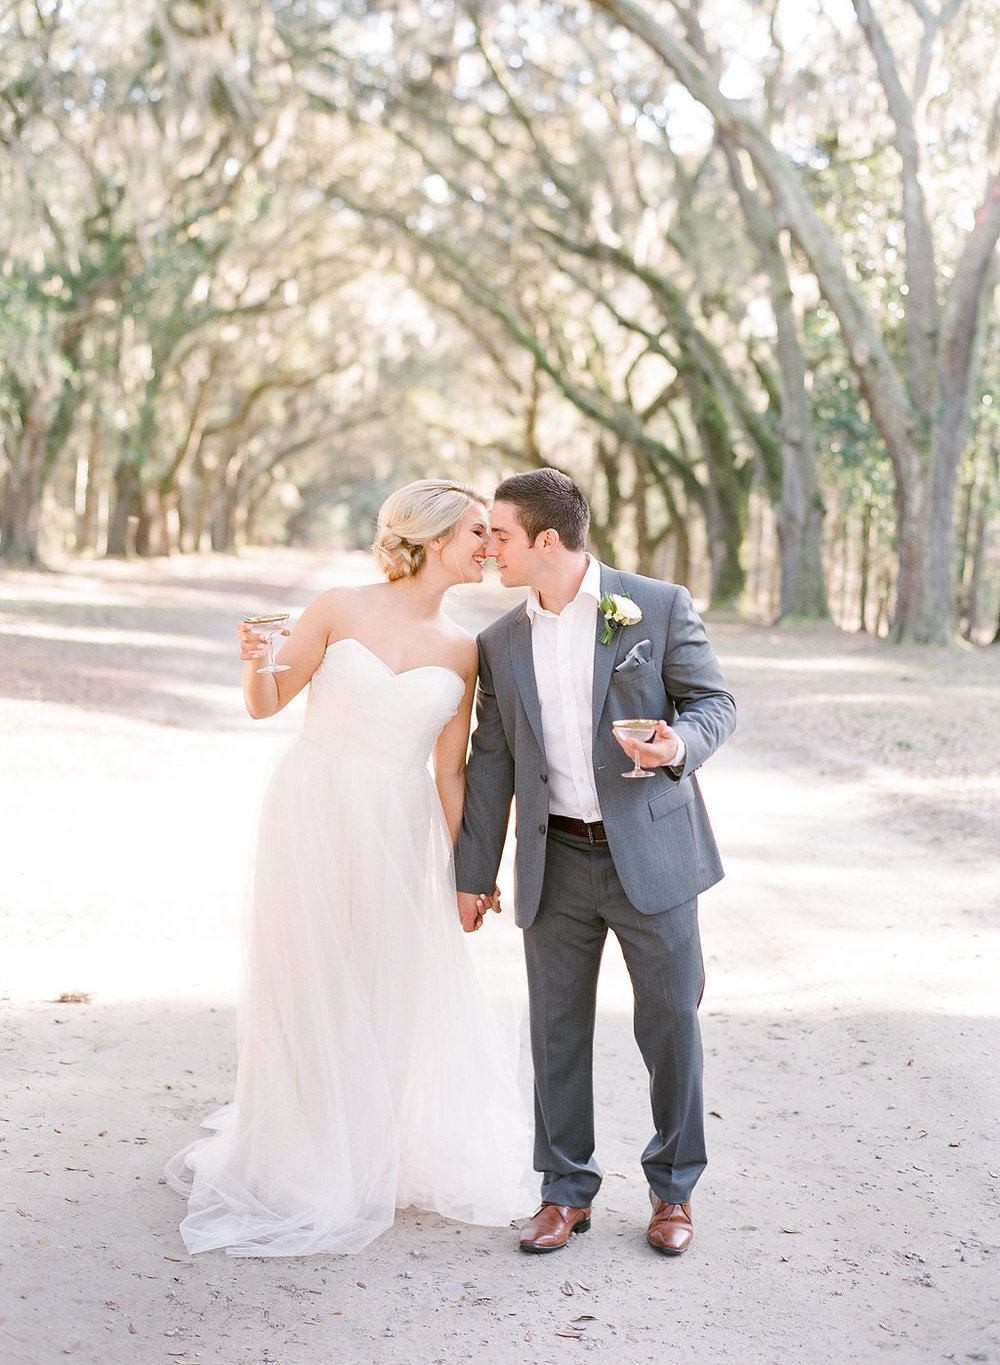 the-happy-bloom-wormsloe-wedding-savannah-wedding-ivory-and-beau-bridal-boutique-savannah-wedding-dresses-savannah-bridal-boutique-georgia-bridal-boutique-design-studio-south-sunset-wedding-blush-by-hayley-paige-candi-1550-blush-wedding-dress-12.jpg